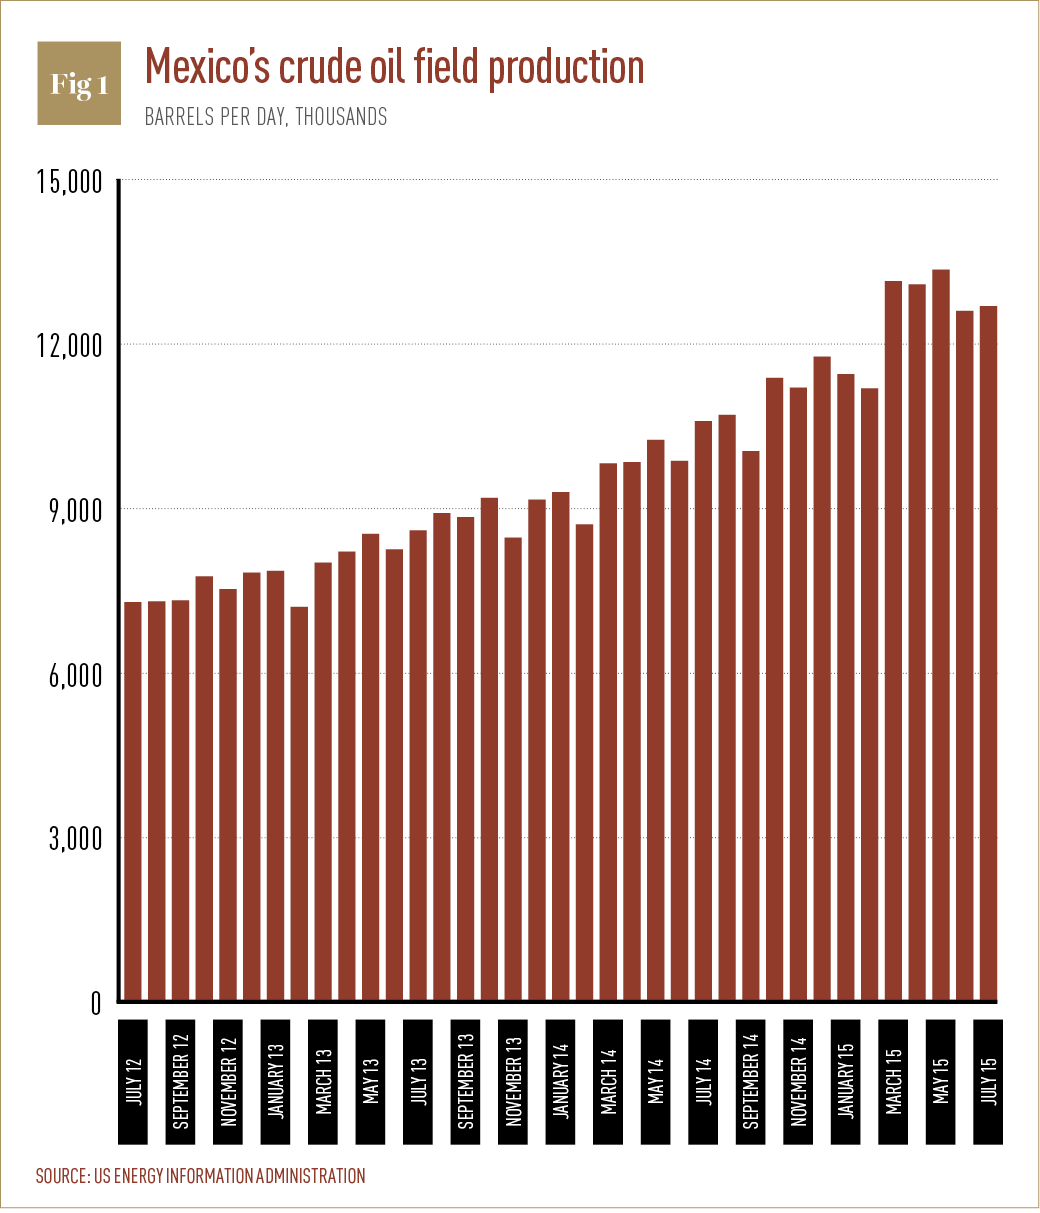 Mexico's crude oil field production